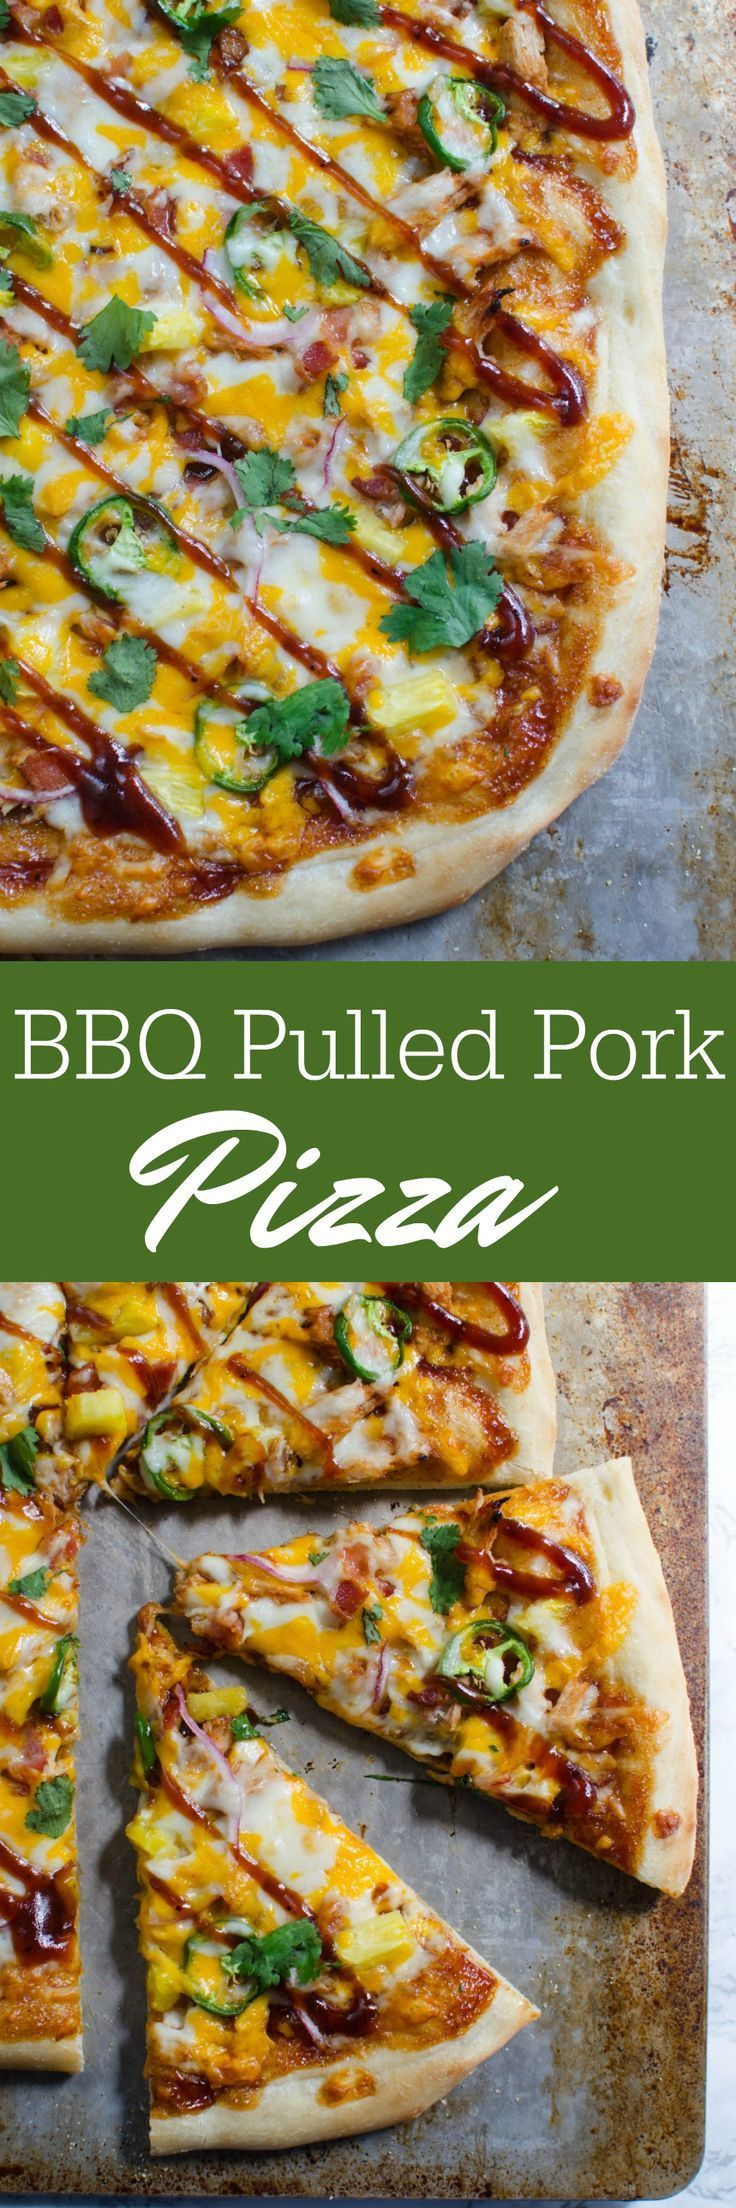 Bbq Pulled Pork Pizza Recipe Pulled Pork Pizza Pulled Pork Pizza Recipe Pizza Recipes